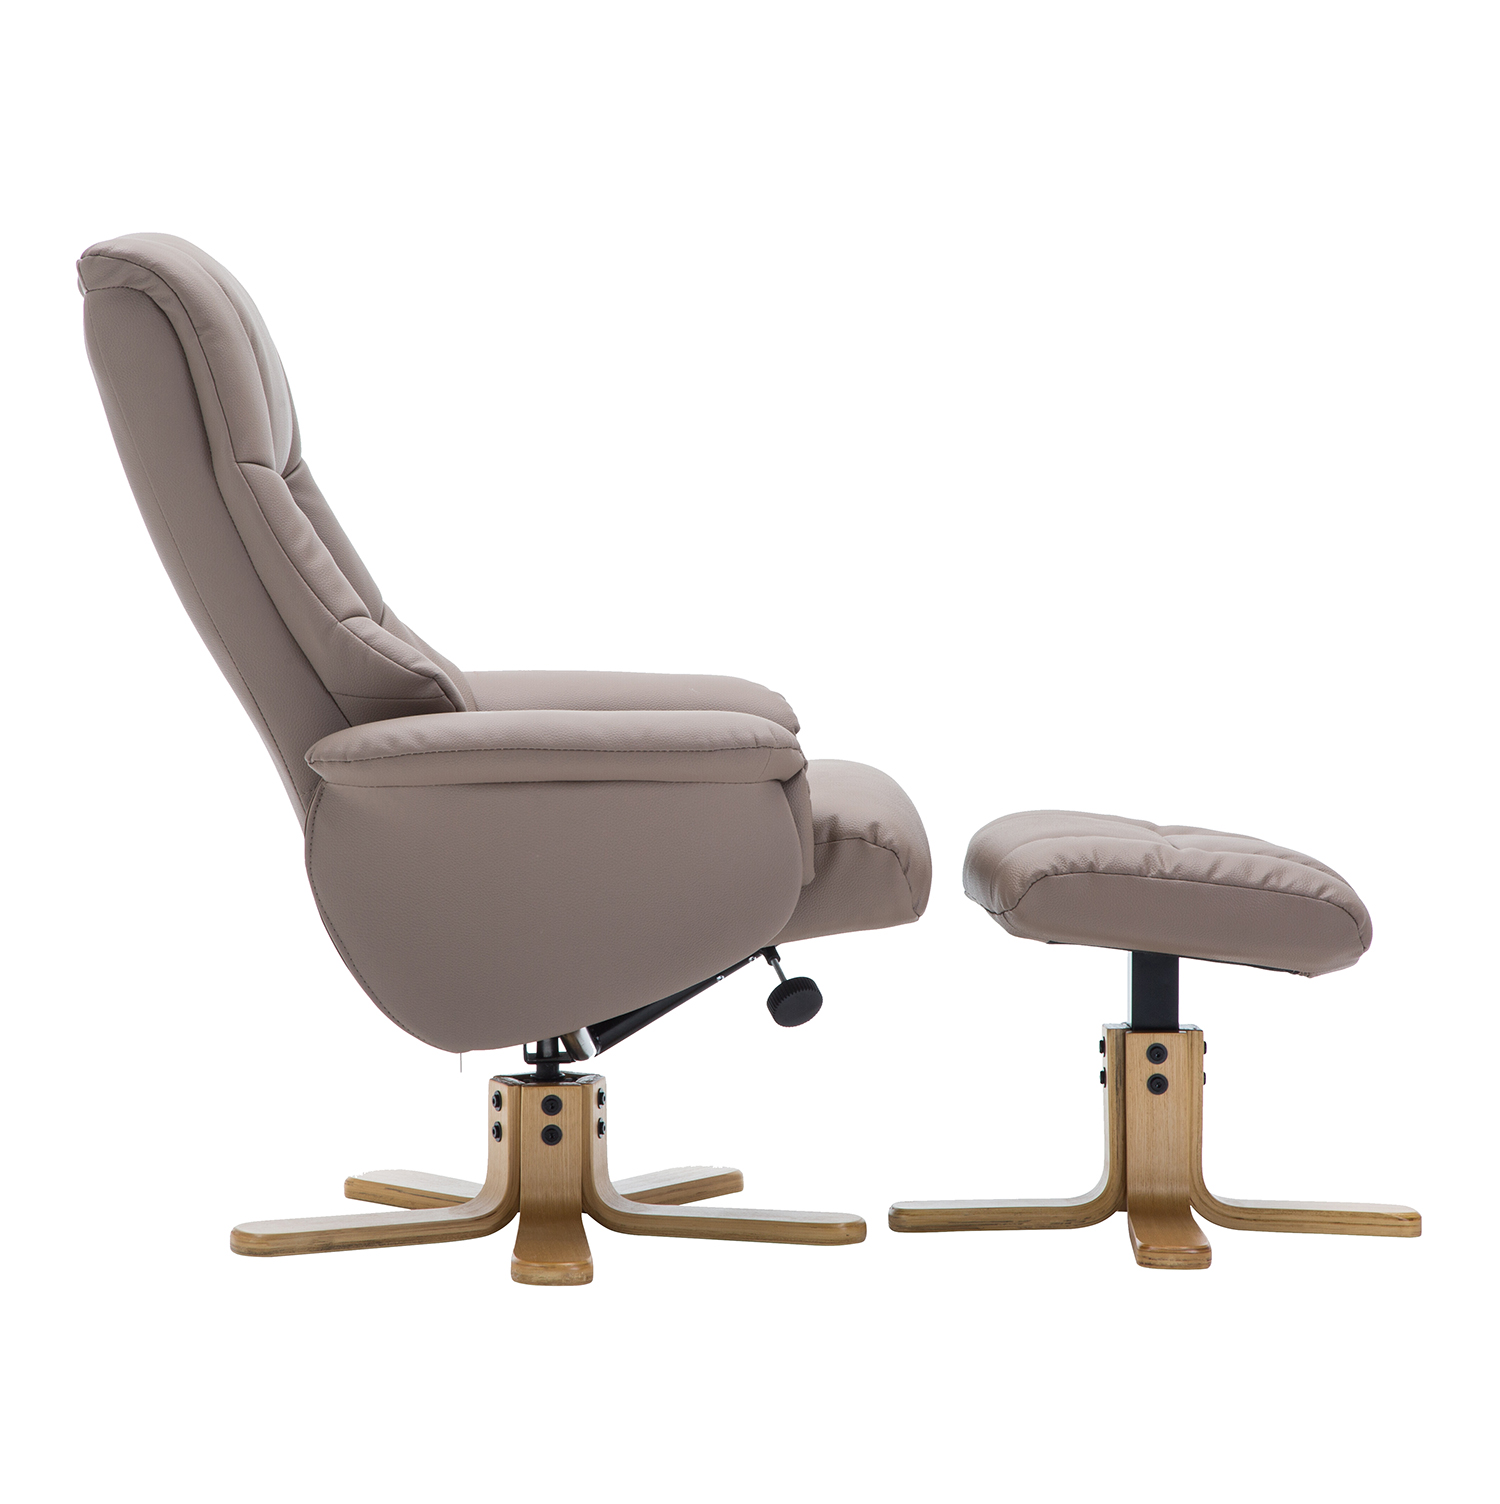 Bailey Swivel Chair & Stool - Faux Leather Earth